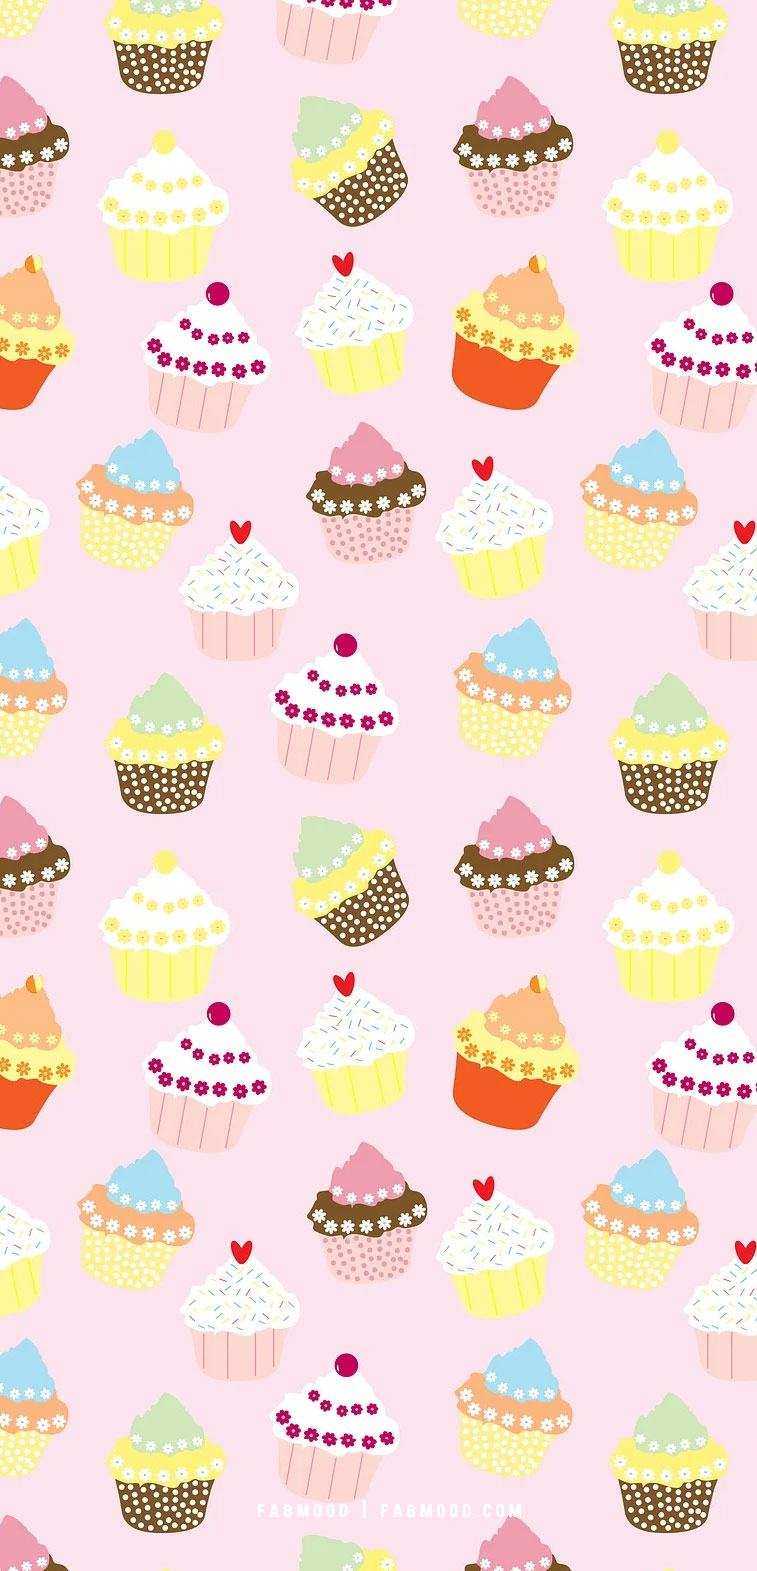 Cute cupcake wallpaper designs for phone